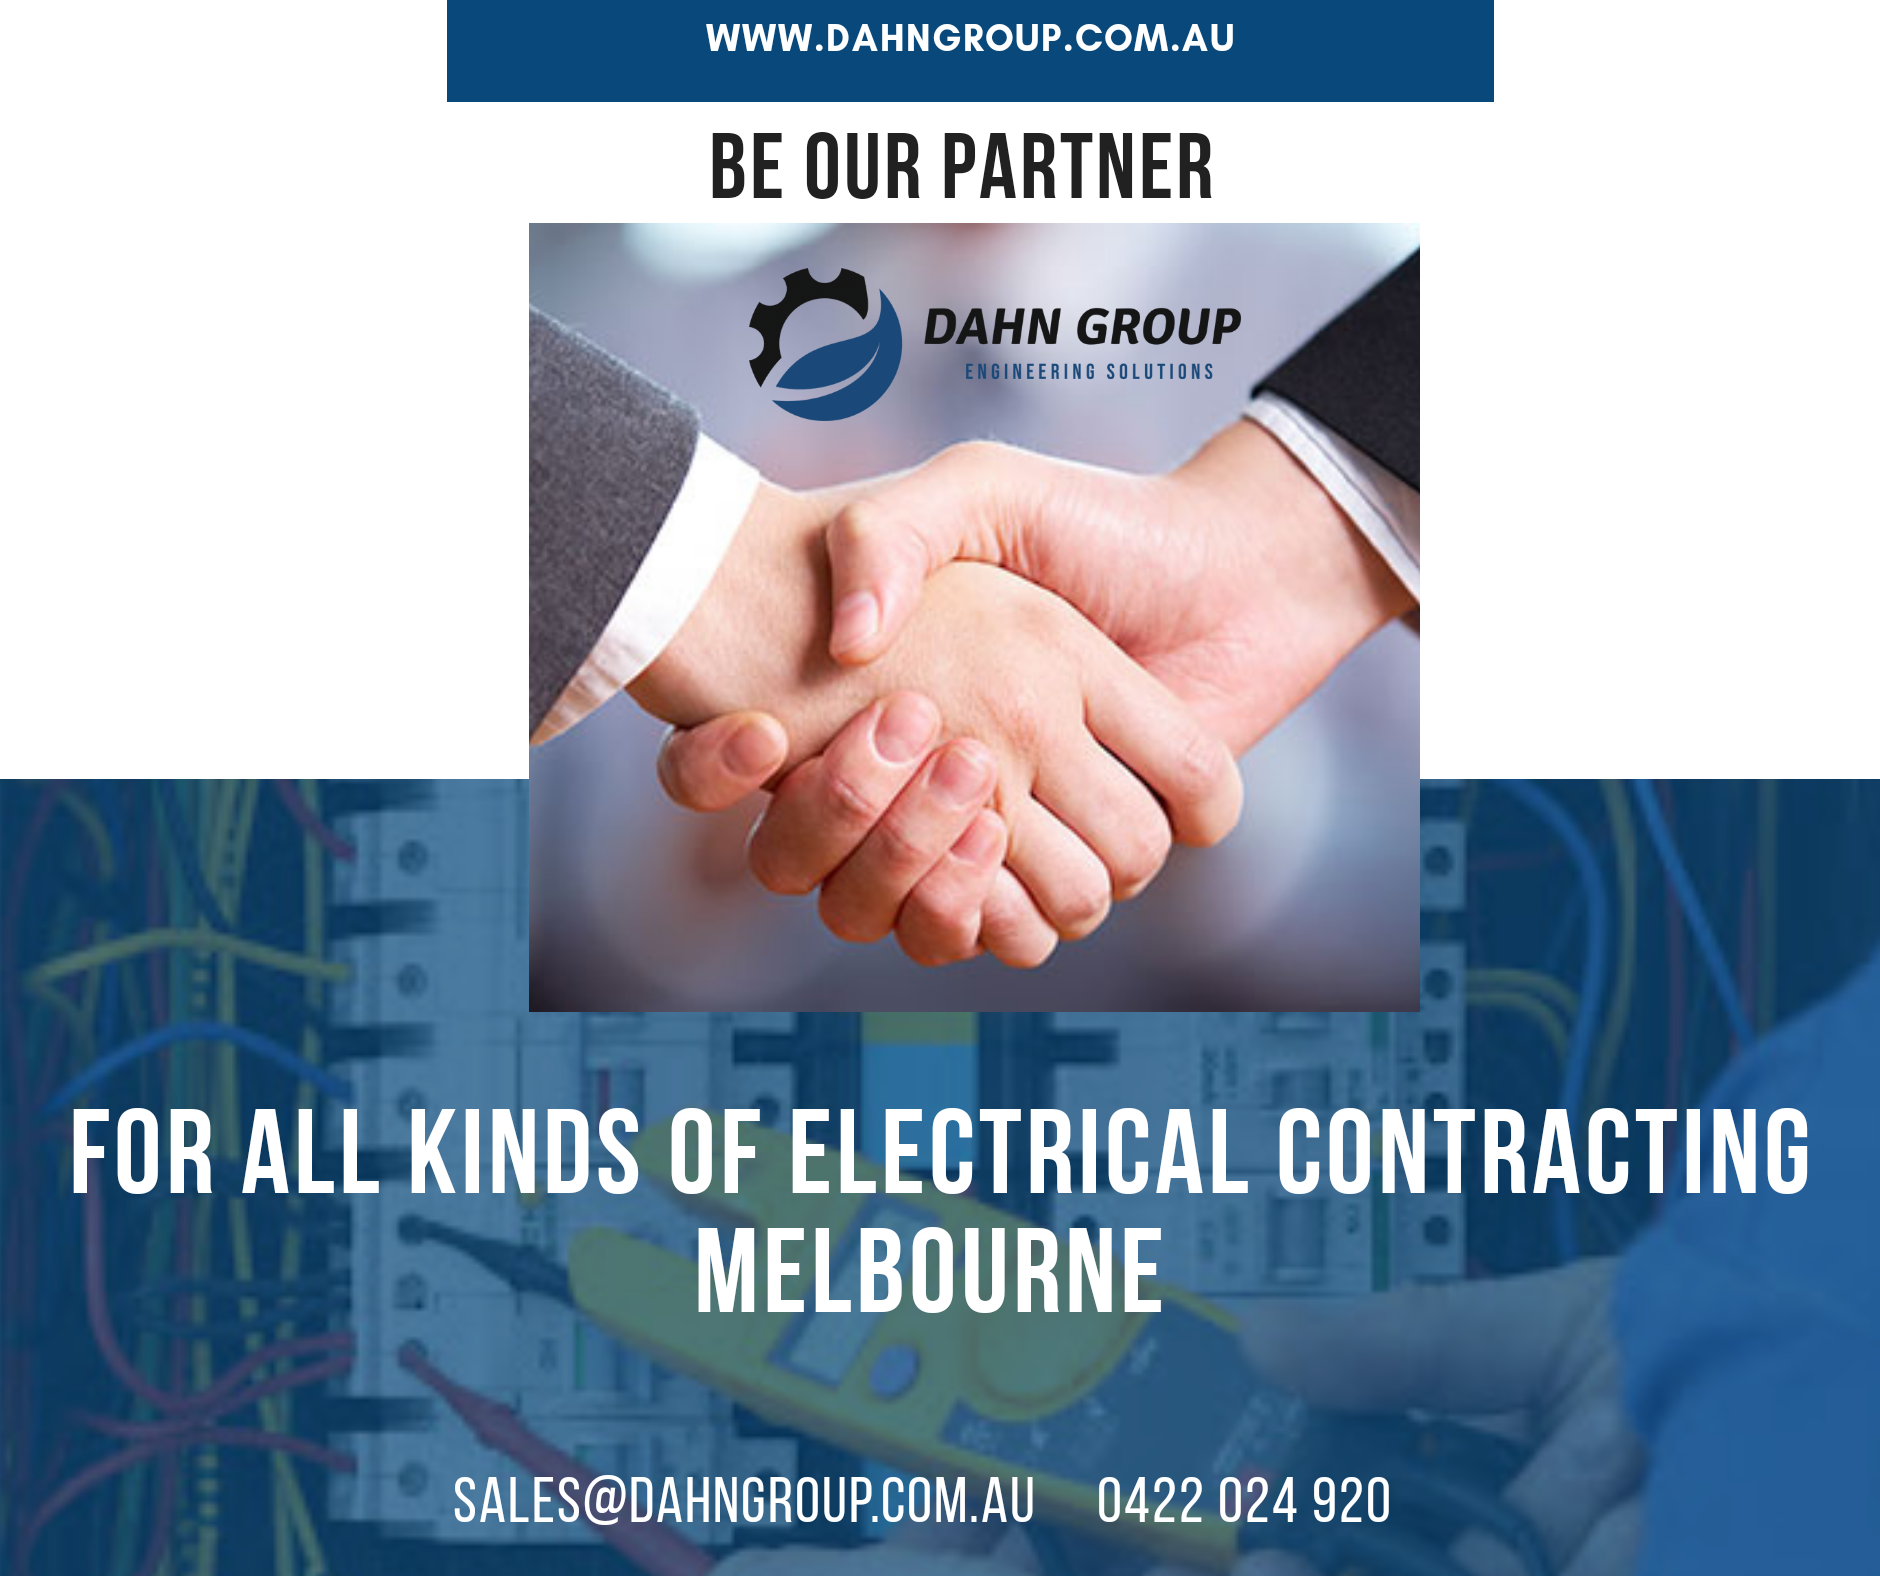 Are you seeking an Electrician in Melbourne?